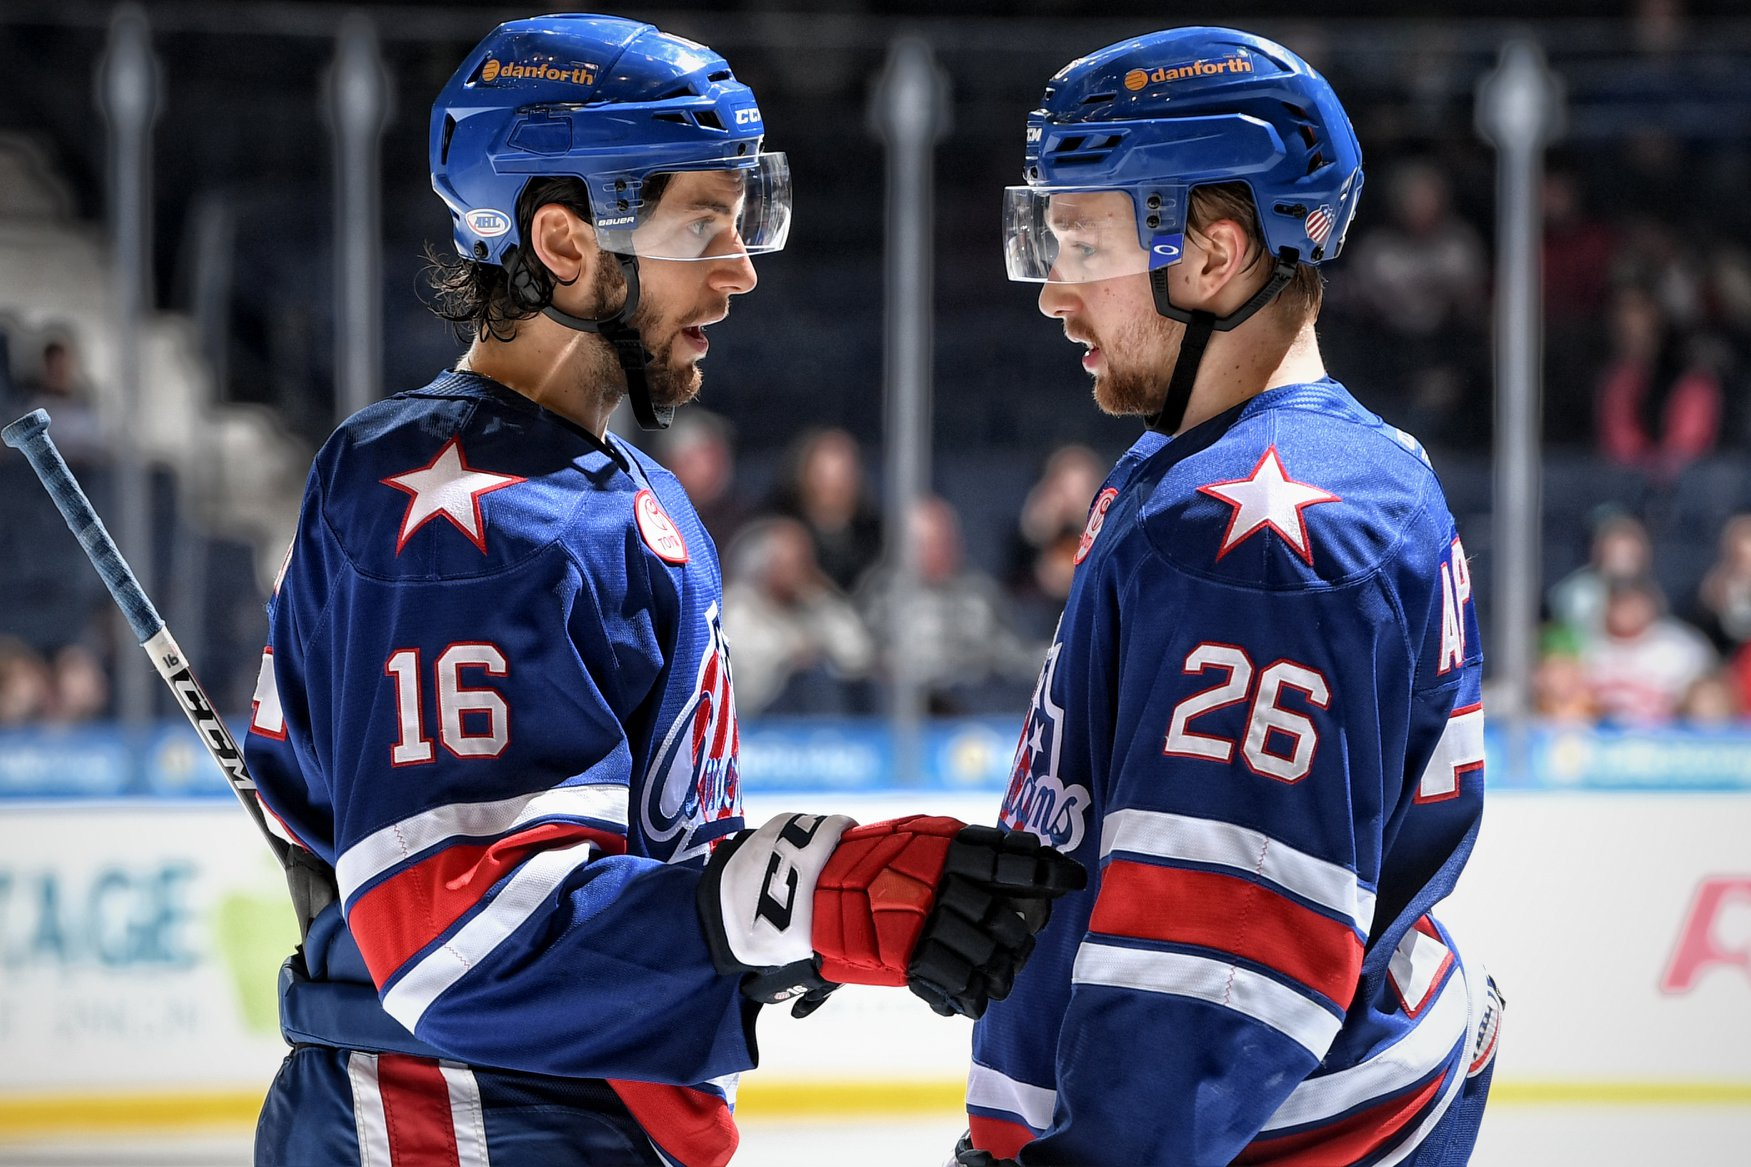 Amerks Complete Perfect Weekend with 6-1 Win Over Devils